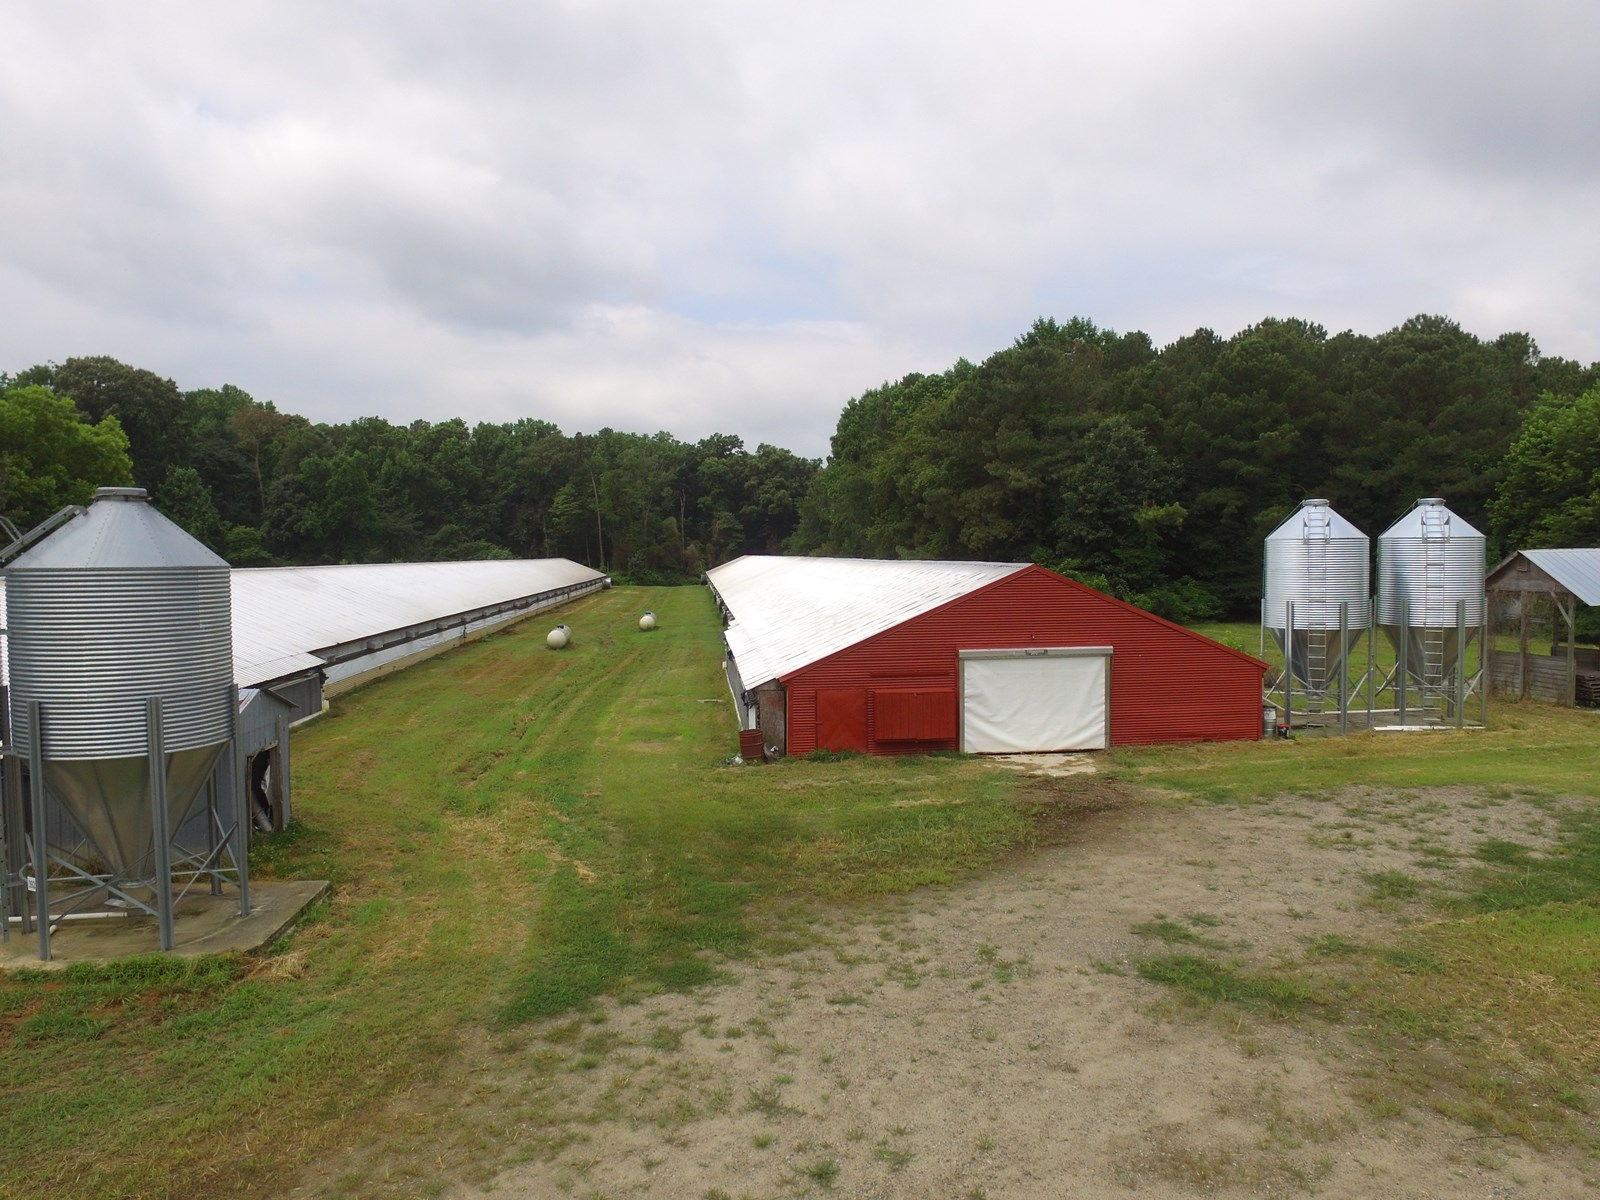 Bertie County Poultry Farm for sale in North Carolina